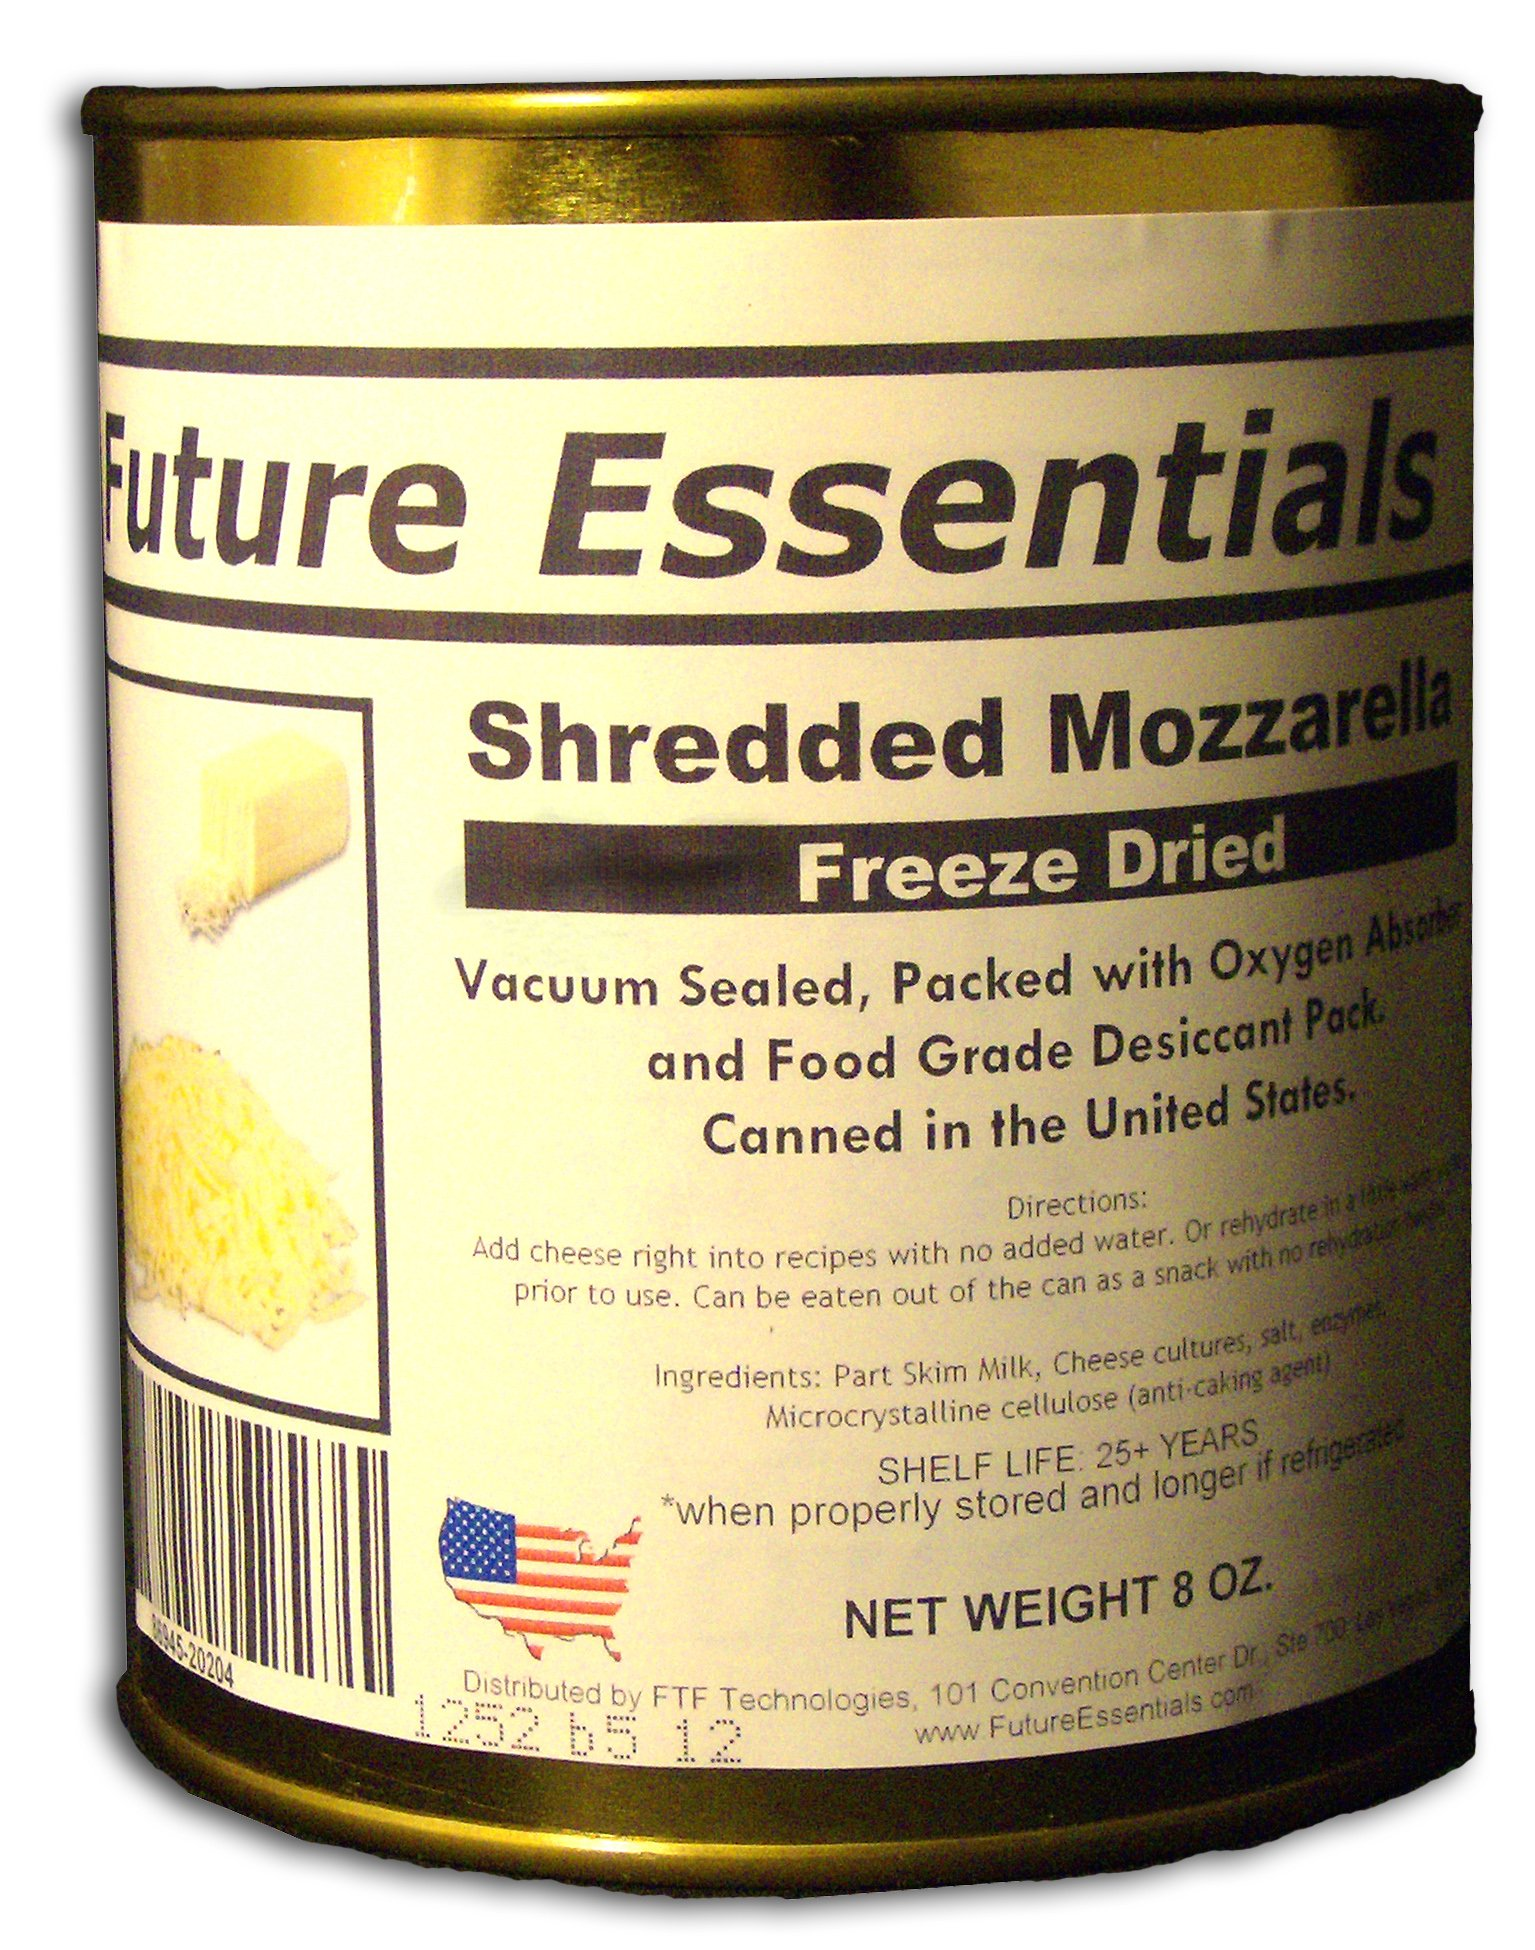 12 Cans of Freeze Dried REAL Mozzarella Shredded Cheese Survival Food- 6Lbs of cheese by Future Essentials